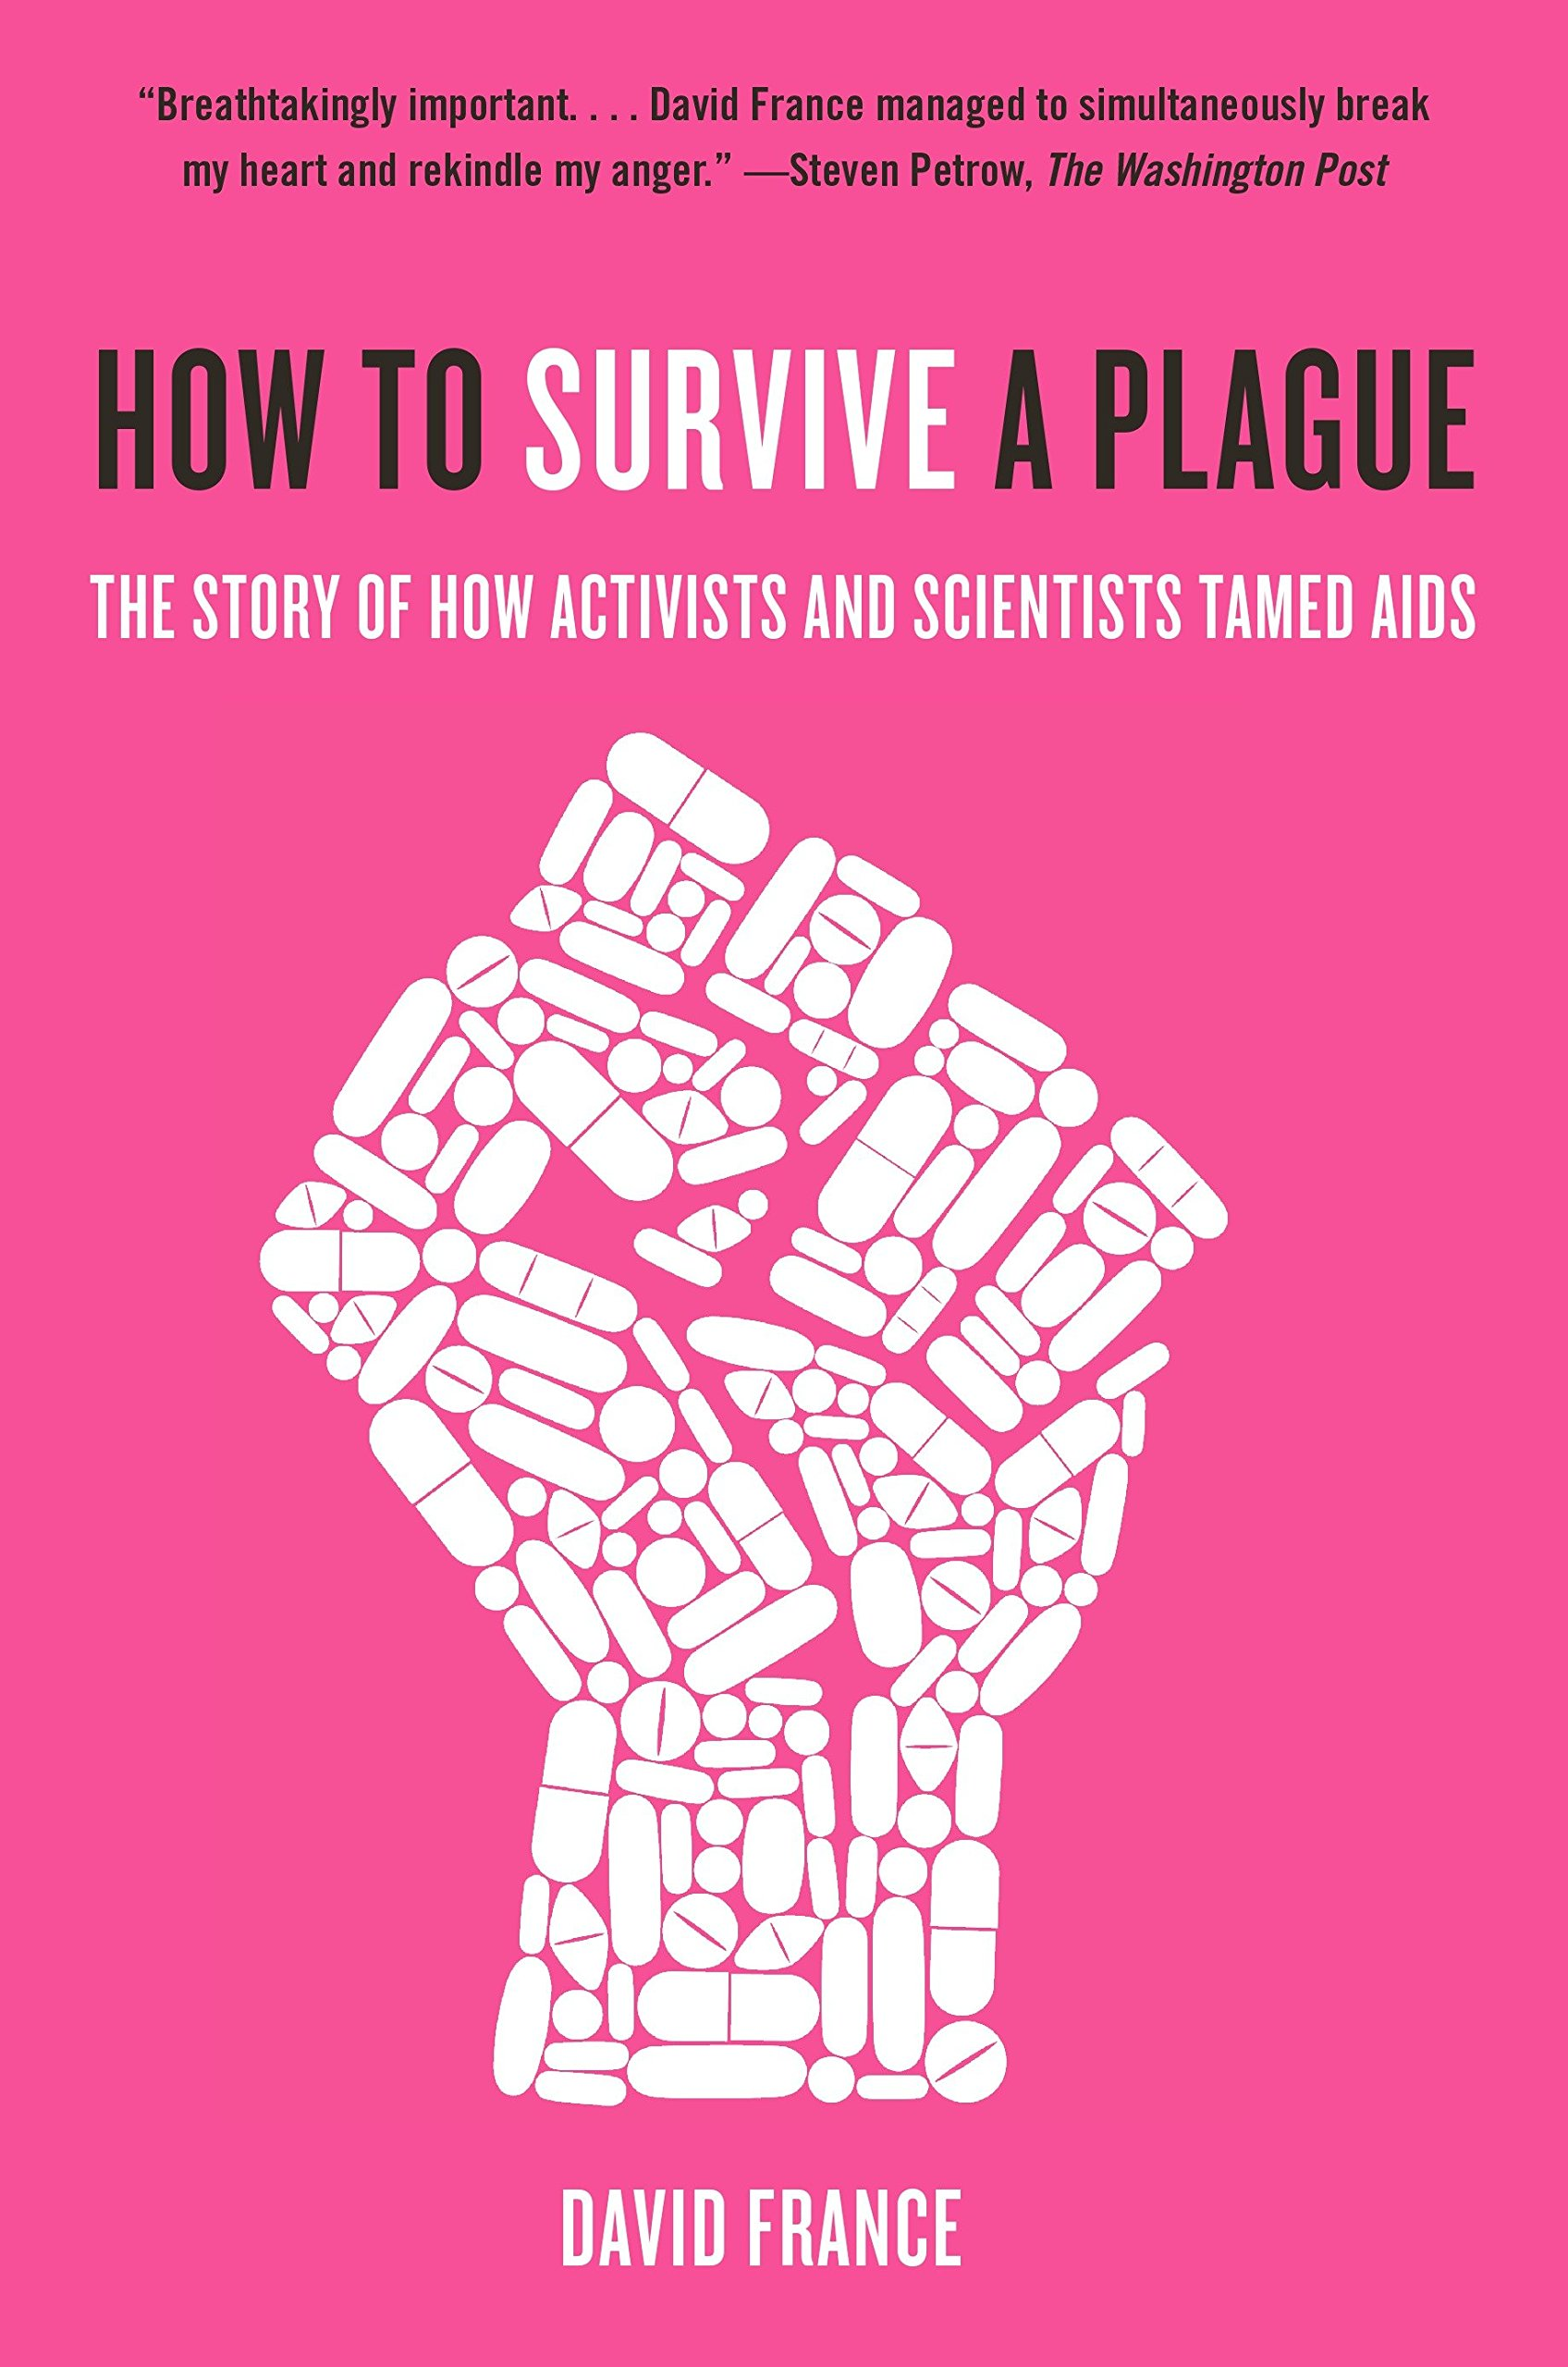 How to Survive a Plague: The Story of How Activists and Scientists Tamed  AIDS Paperback – Oct 3 2017